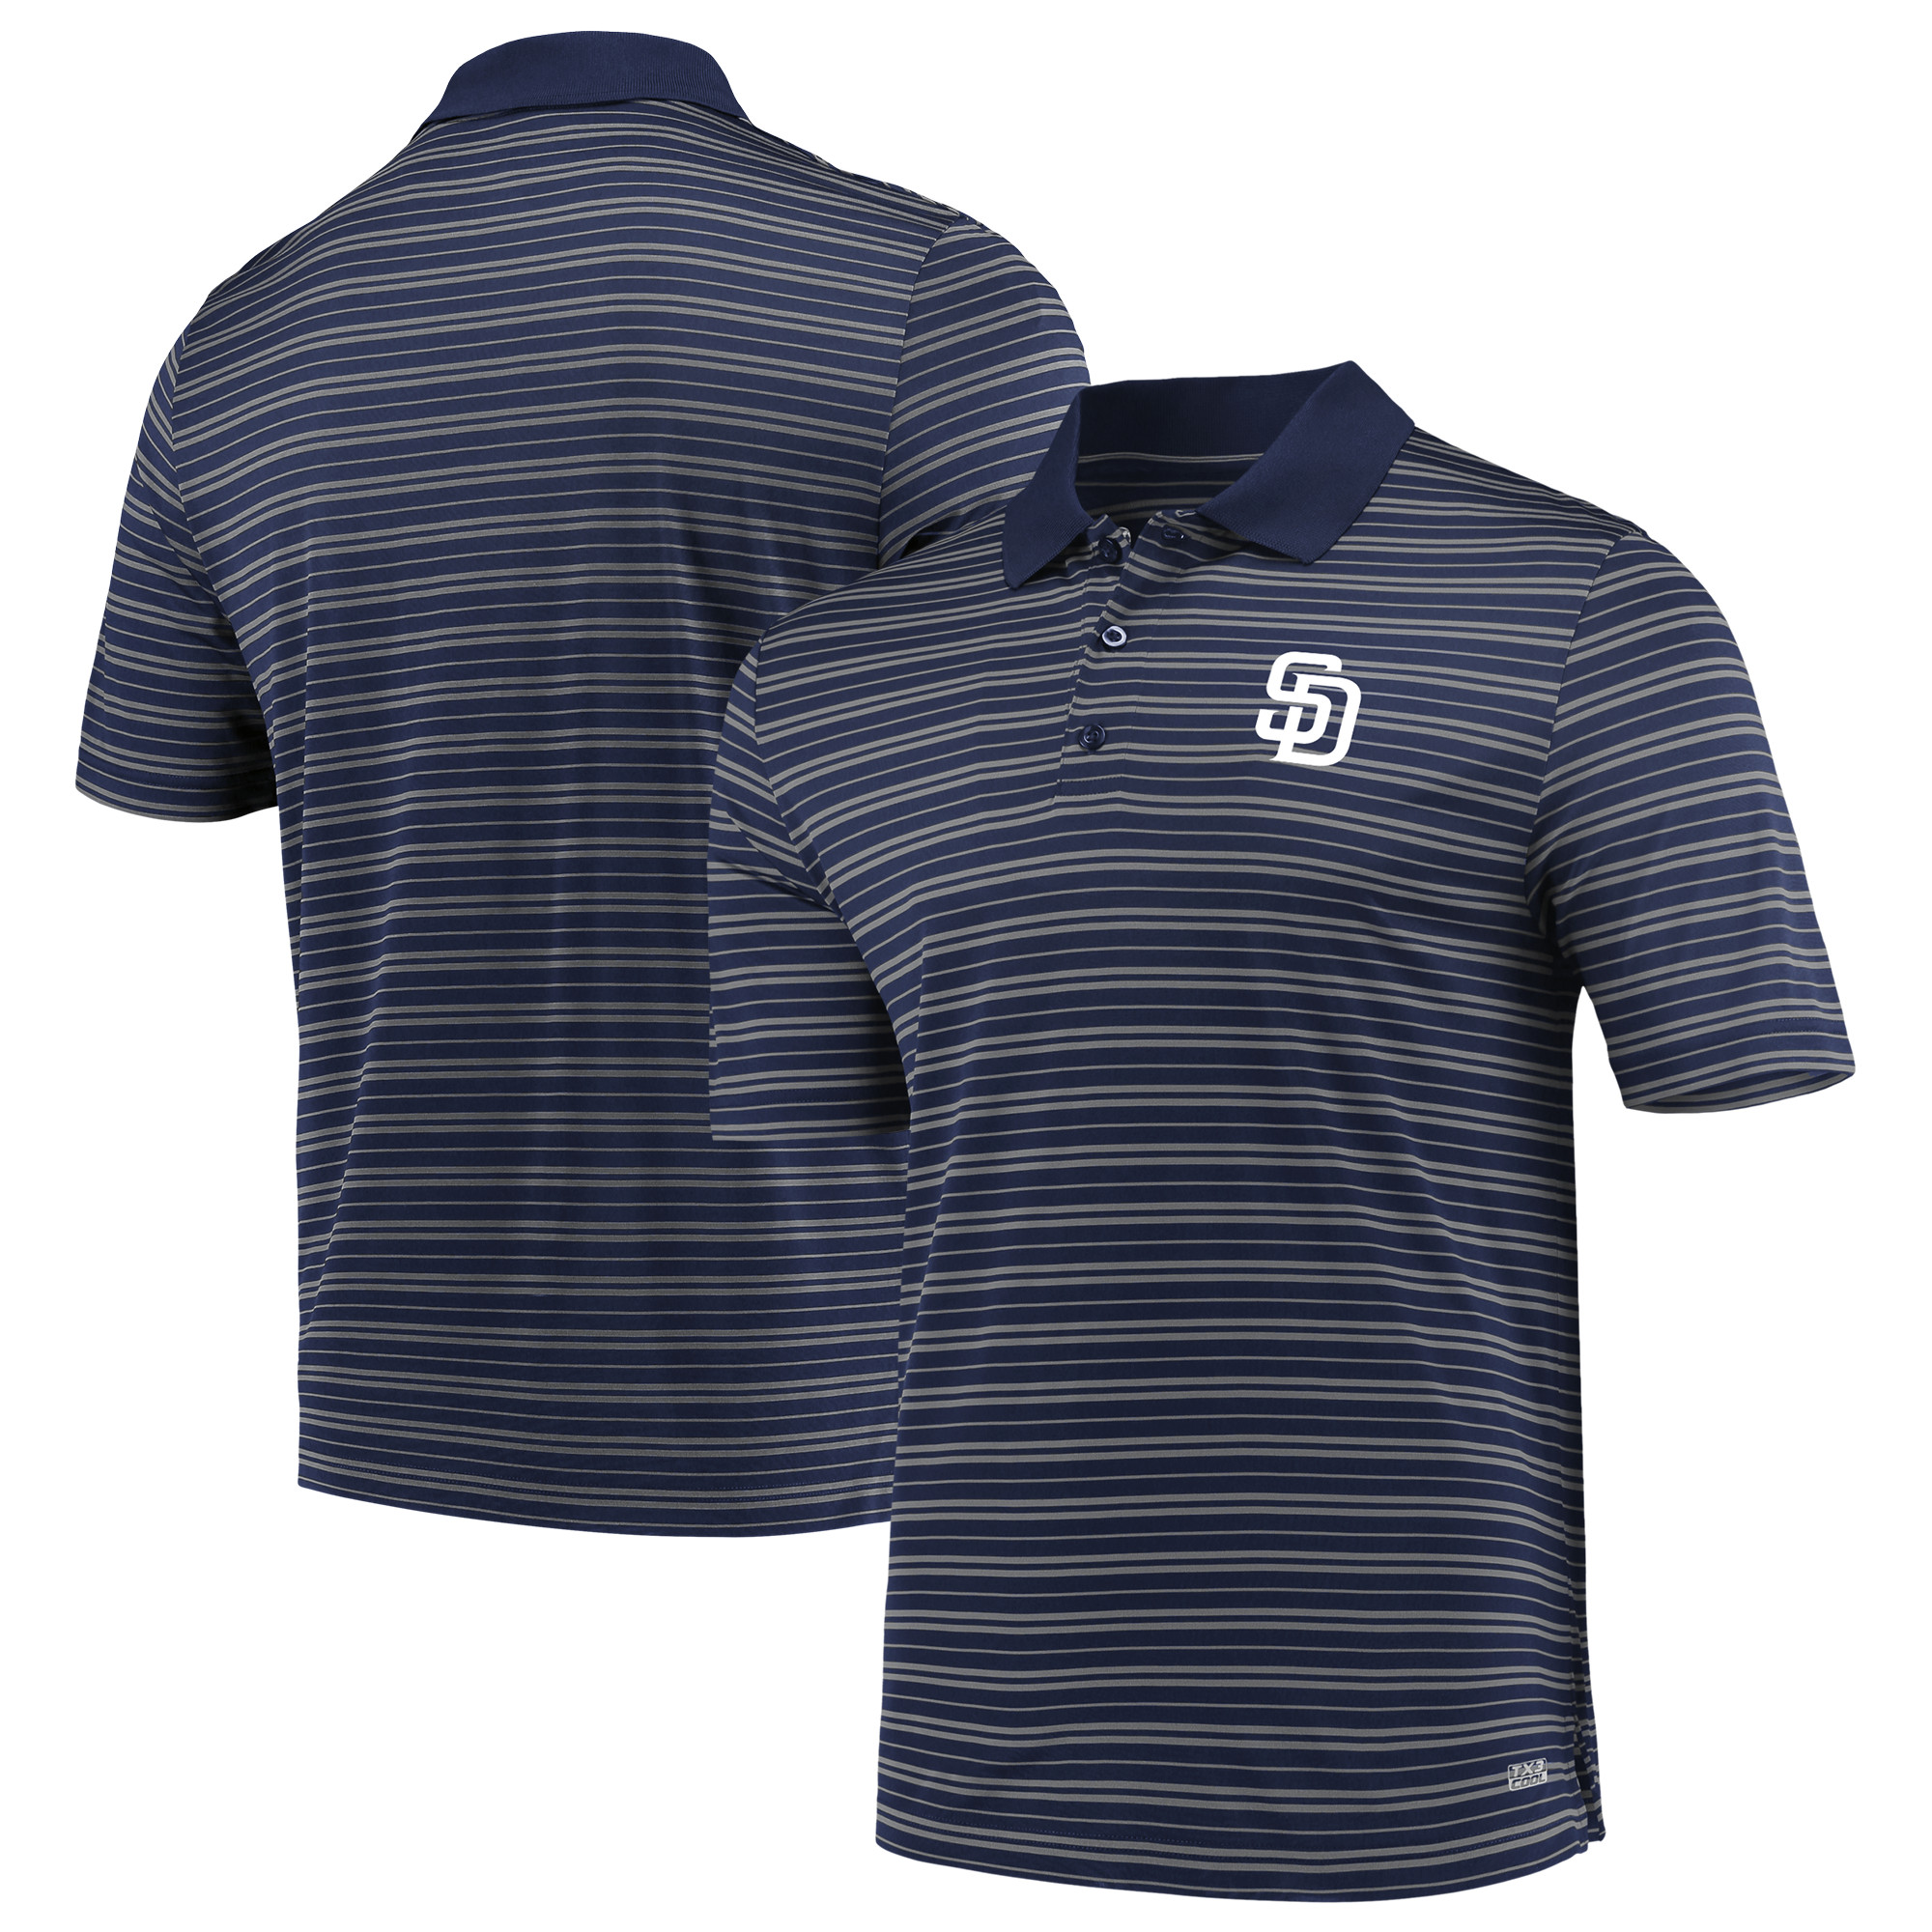 Men's Majestic Navy San Diego Padres Fan Engagement Polo